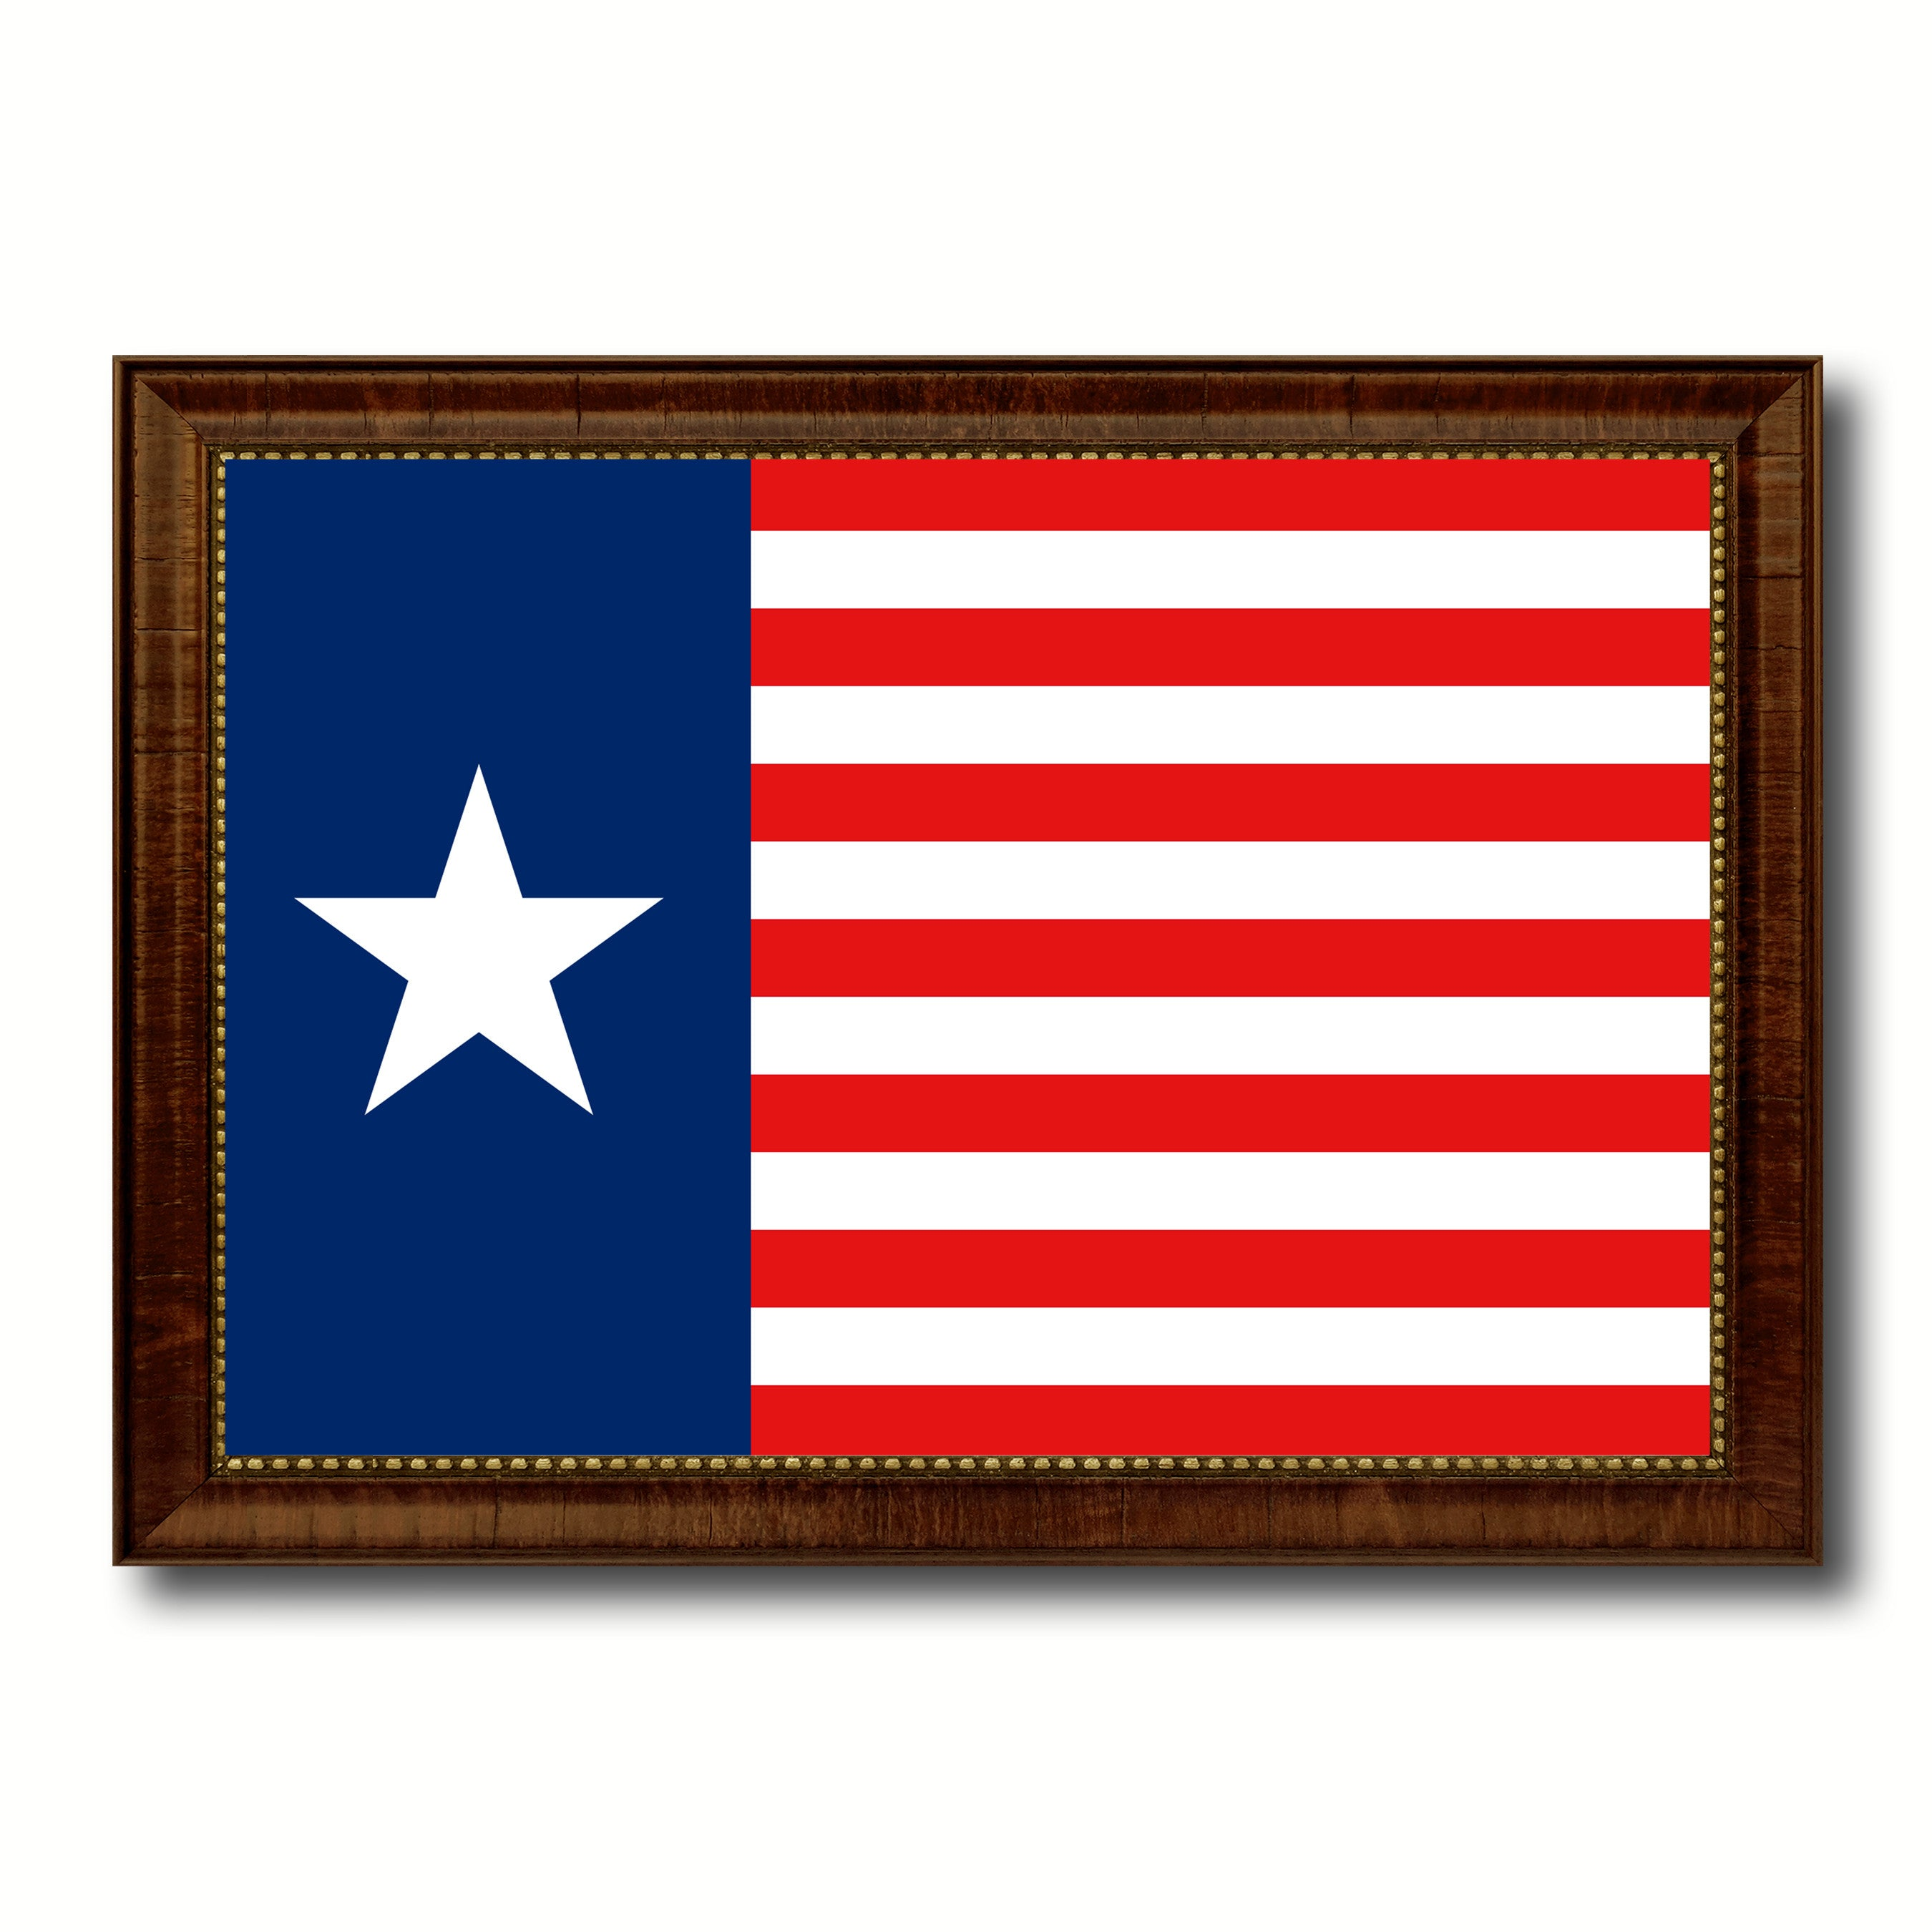 Texas Navy Texan Revolution 1838-1846 Naval Jack Military Flag Canvas Print with Brown Picture Frame Home Decor Wall Art Gift Ideas